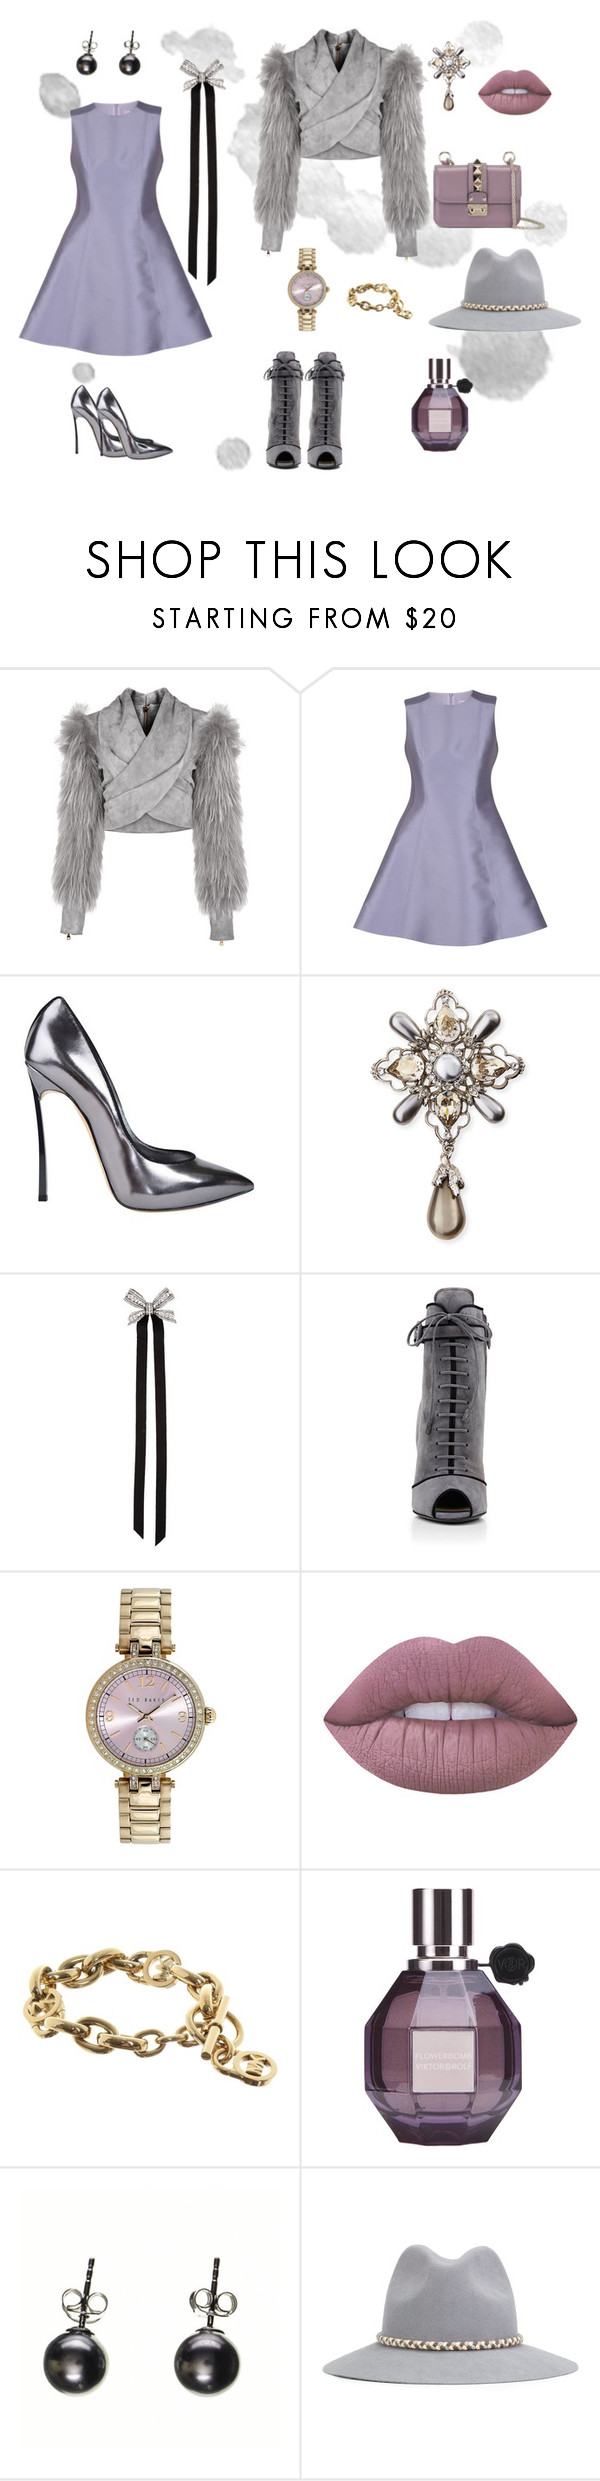 """set 4"" by natucsya on Polyvore featuring мода, Balmain, RED Valentino, Casadei, Oscar de la Renta, Lanvin, Prada, Ted Baker, Lime Crime и Michael Kors"